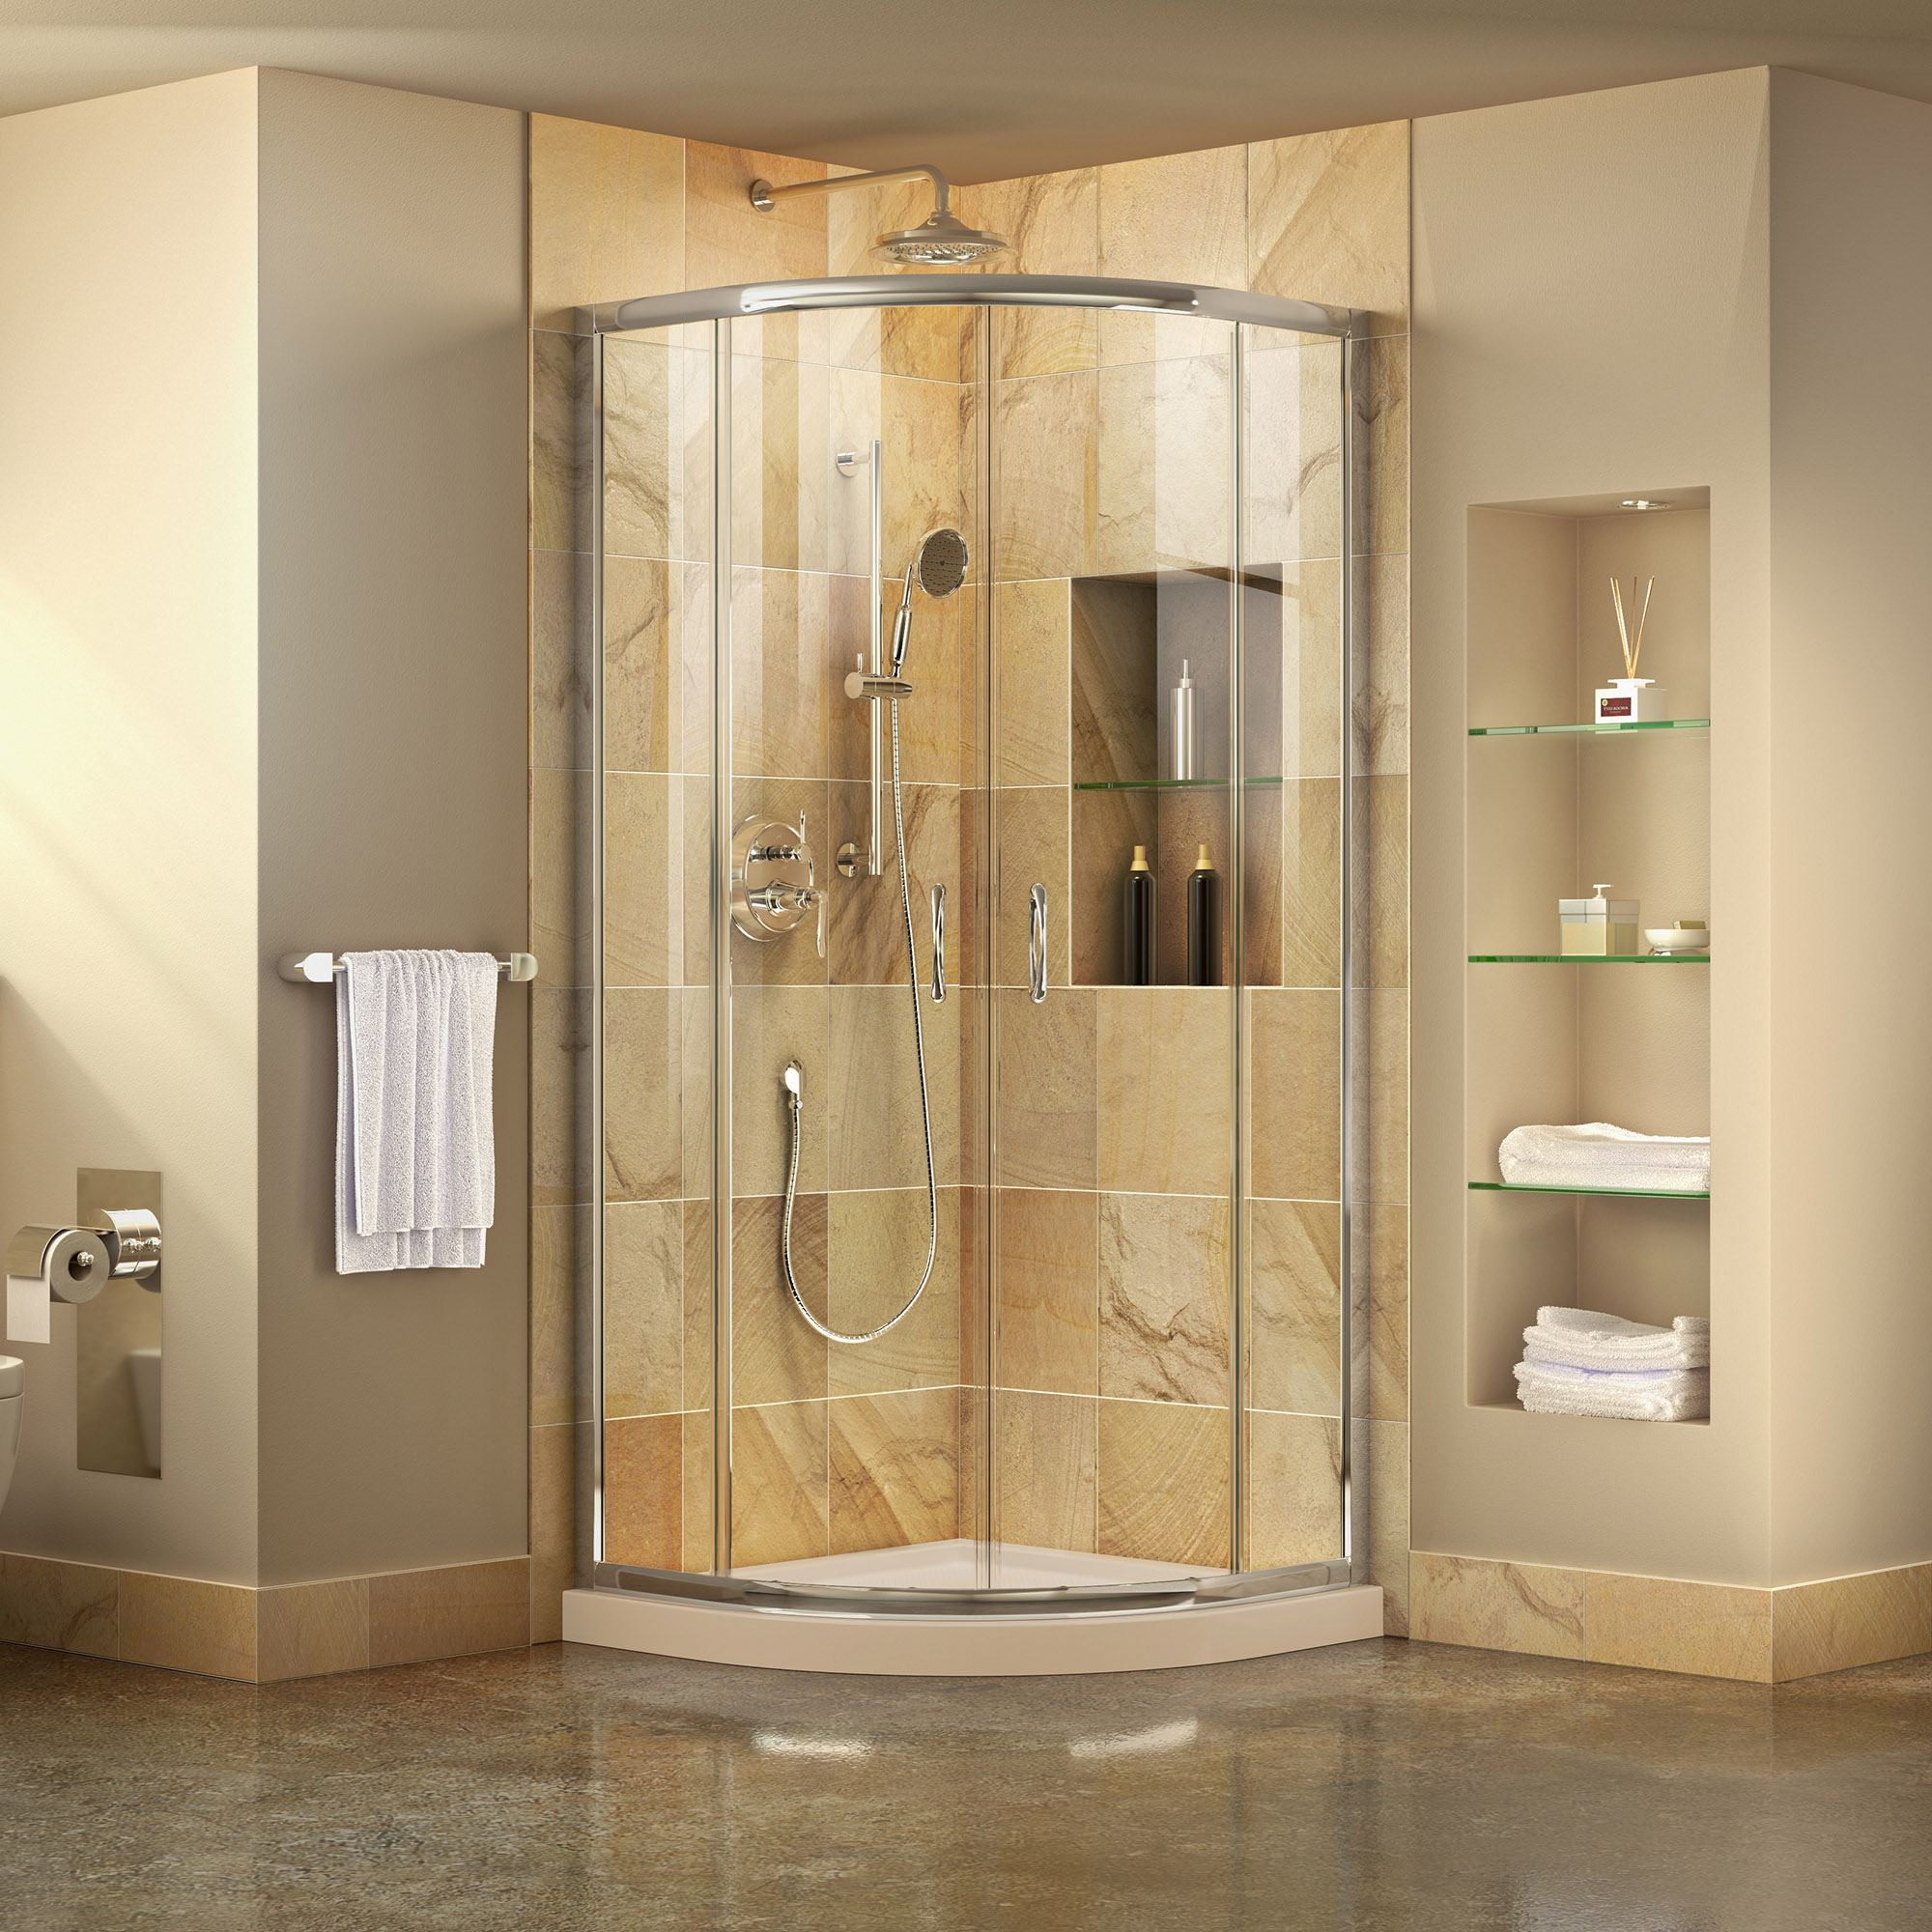 "Prime Frameless Sliding Shower Enclosure & SlimLine 38"" by 38"" Quarter Round Shower Tray"